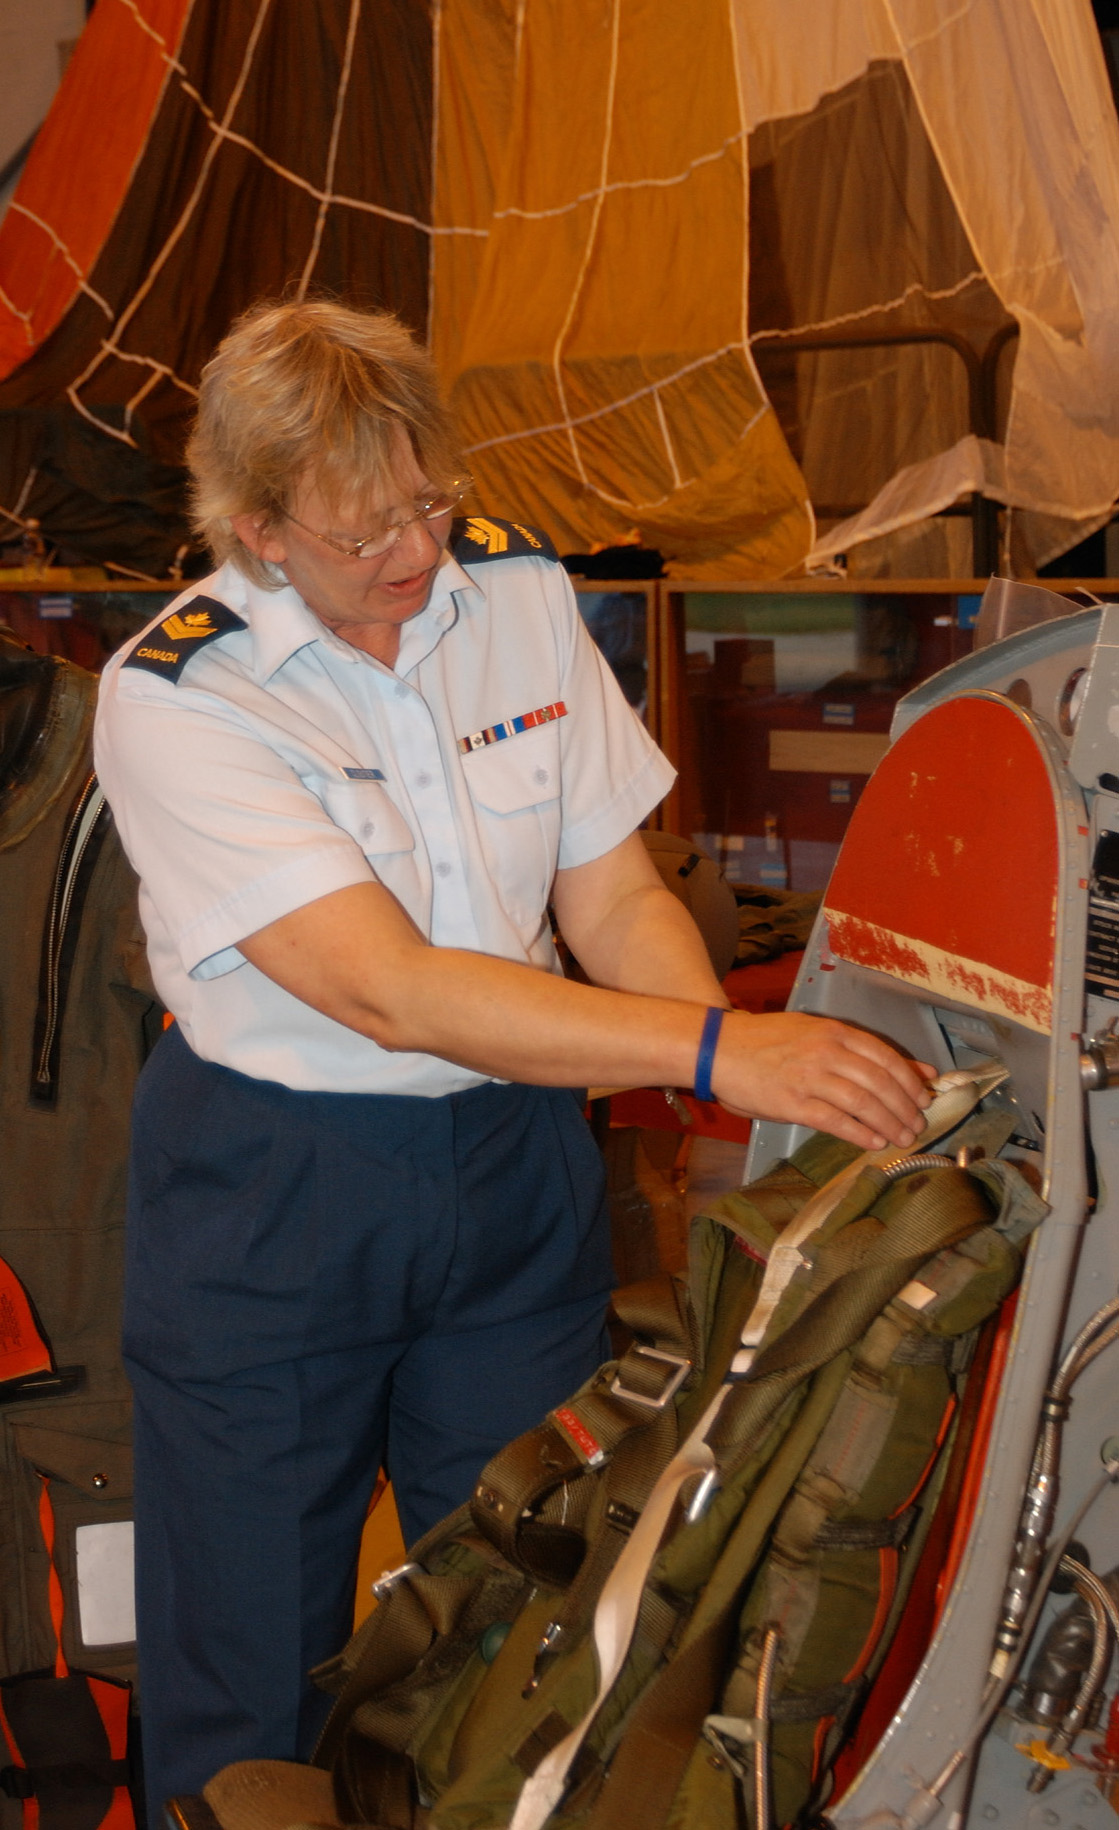 Master Corporal Bridgitte Cloutier, an aviation technician at 16 Wing Borden, Ontario, adjusts the straps of an ejection seat in the aviation life support equipment display on Armed Forces Day in June 2008. PHOTO: Sergeant Kev Parle